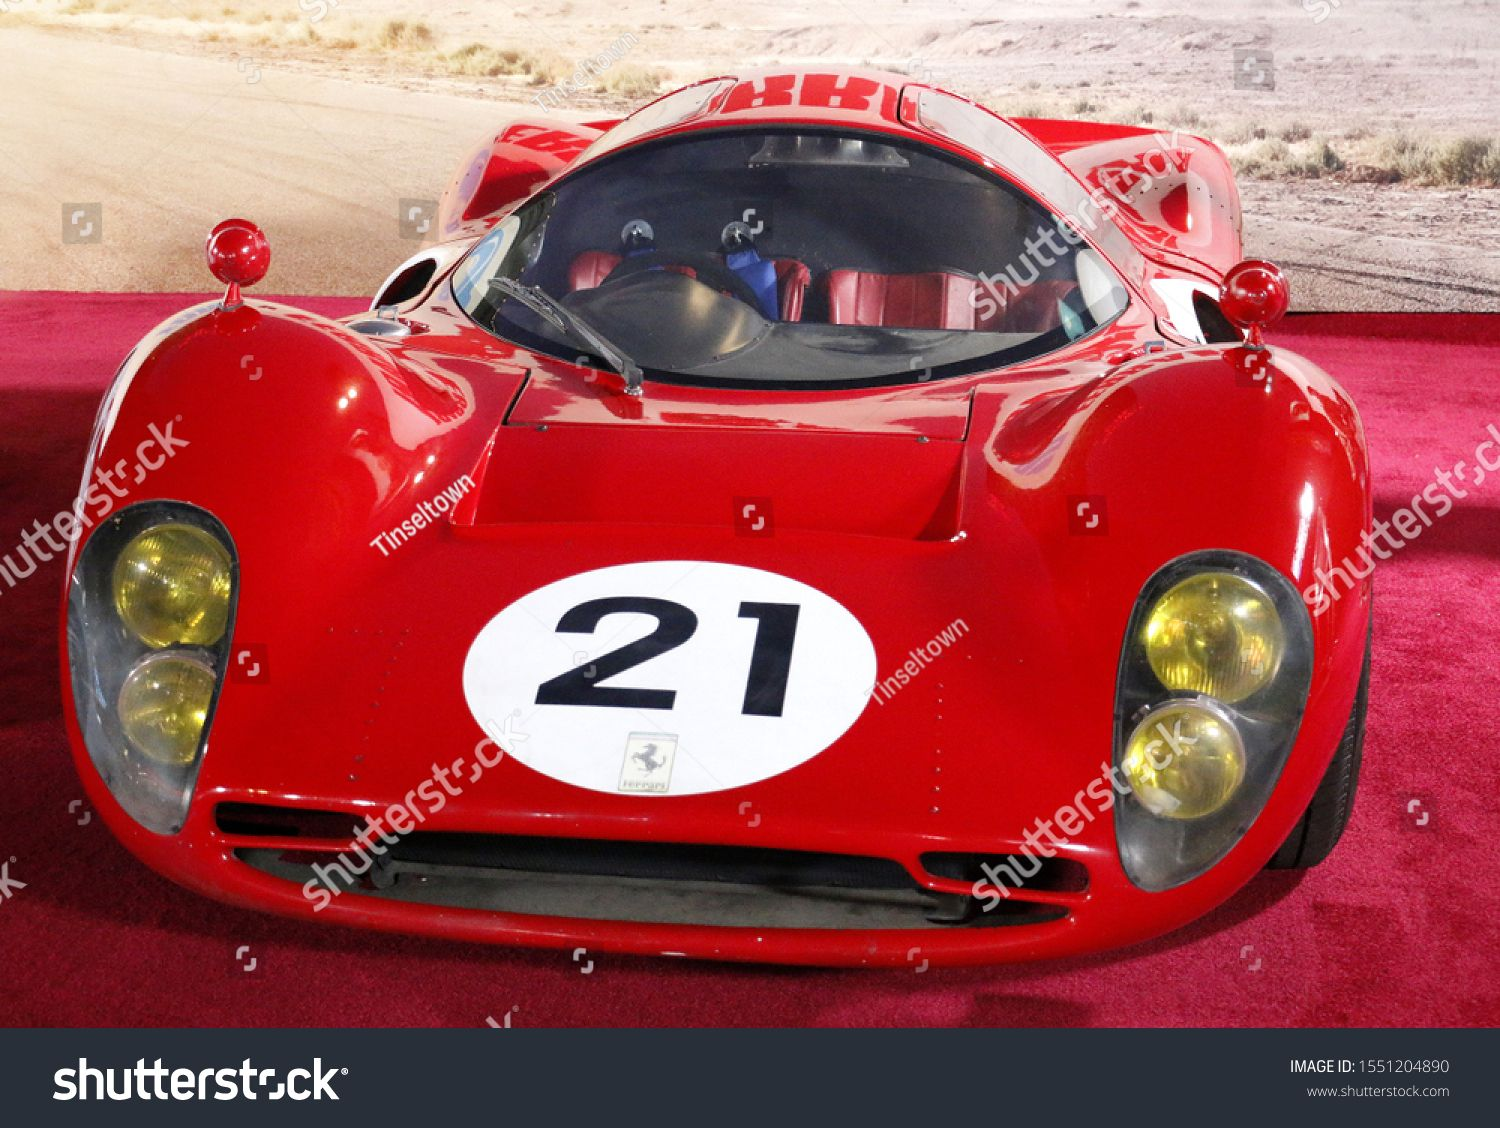 1966 Ferrari P3 At The Los Angeles Premiere Of Ford V Ferrari Held At The Tcl Chinese Theatre In Hollywood Usa On November 4 2019 Ad Affiliate Ferrari